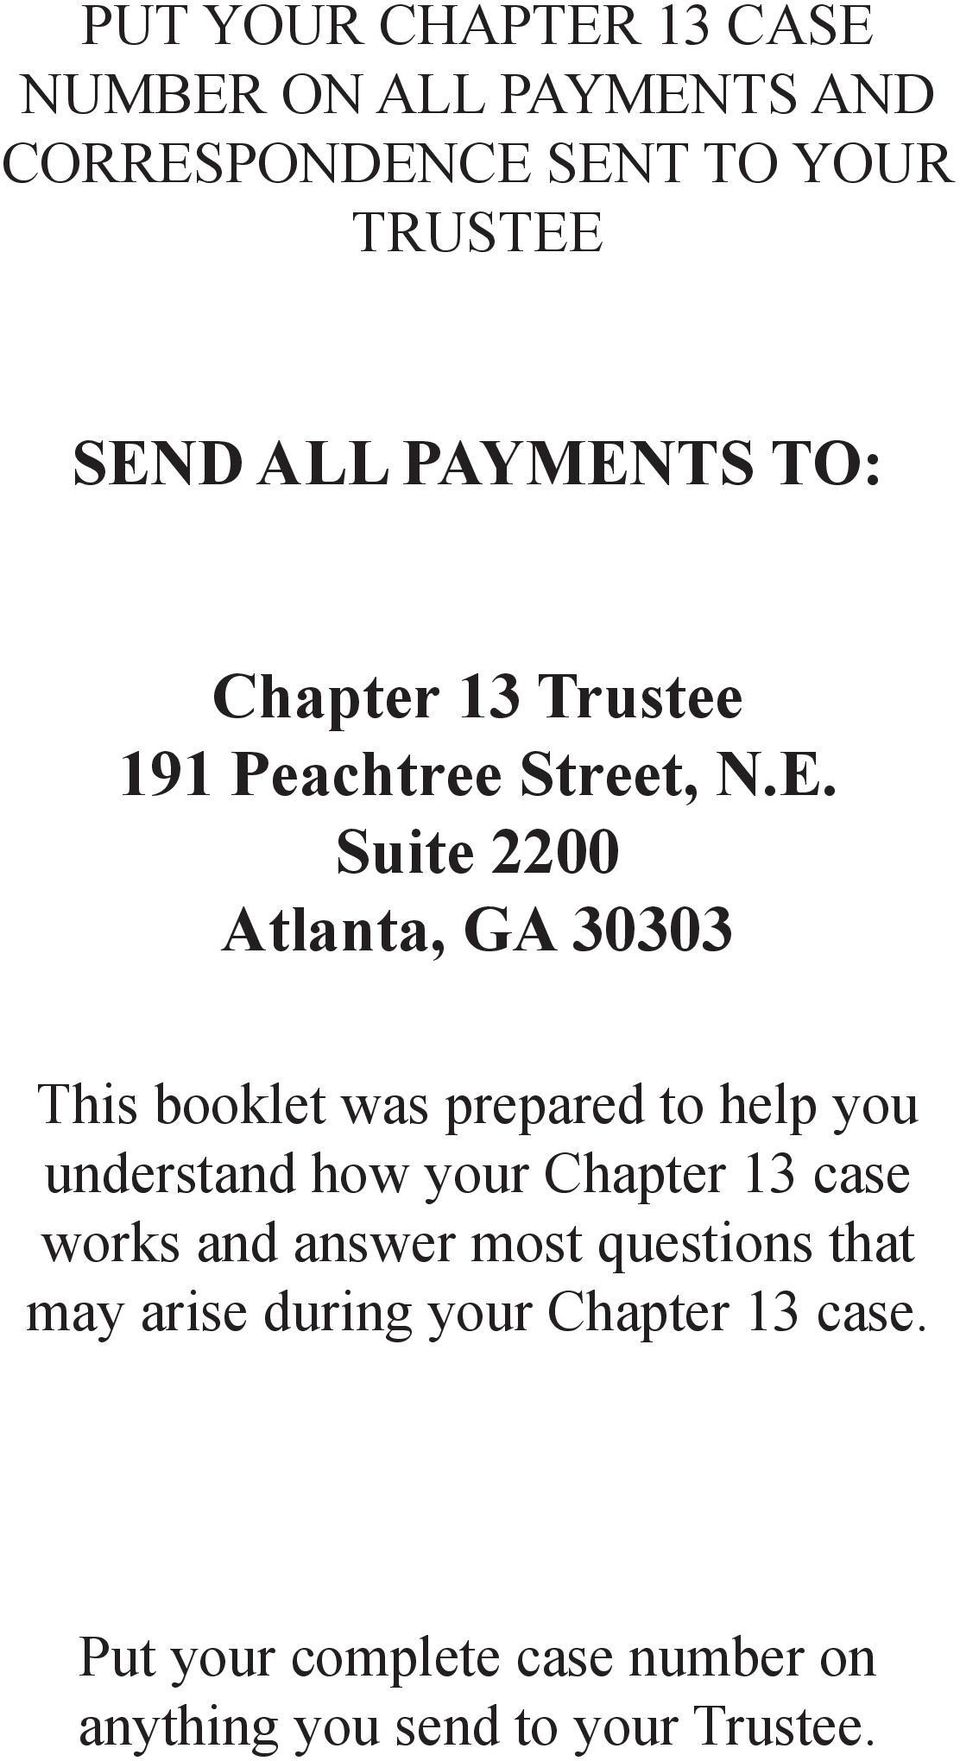 TS TO: Chapter 13 Trustee 191 Peachtree Street, N.E.